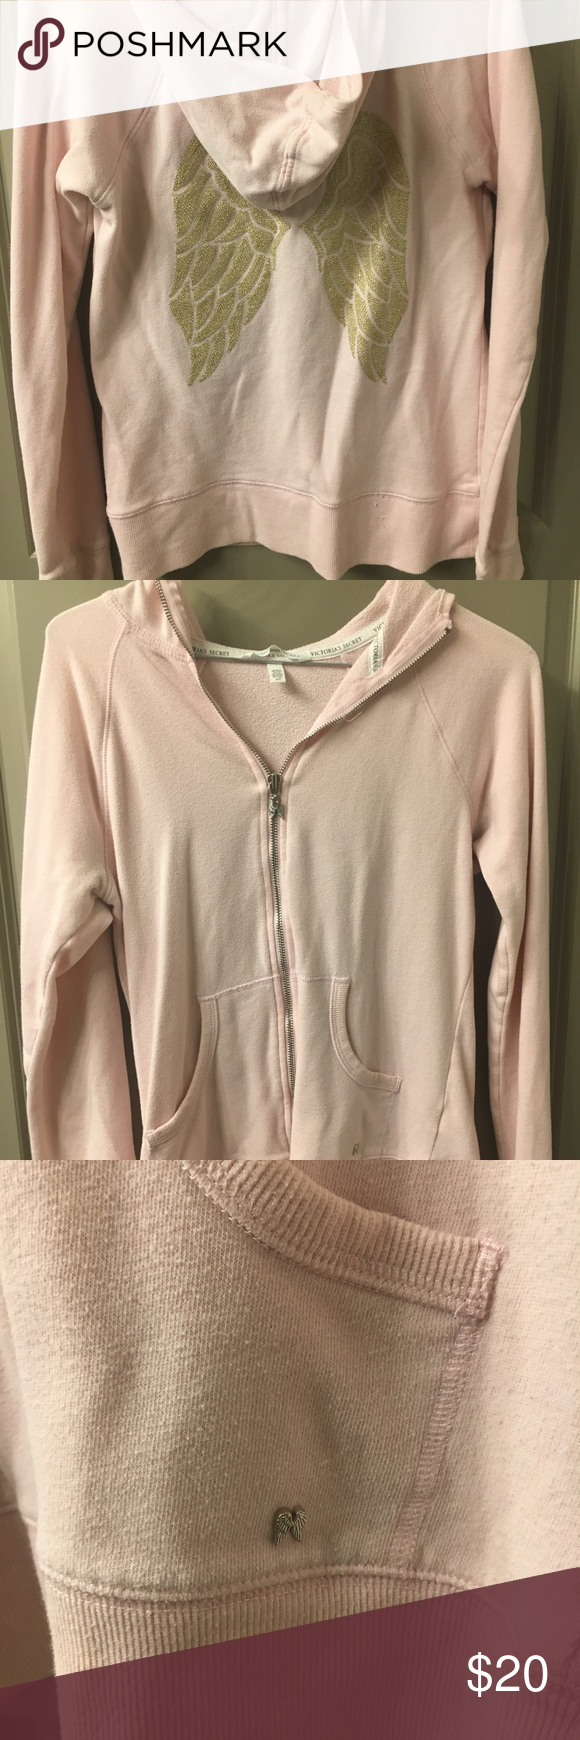 501551b4336 Victoria s Secret Gold Angel Wing Pink Zip Up No stains or tears. Pale Pink  Zip